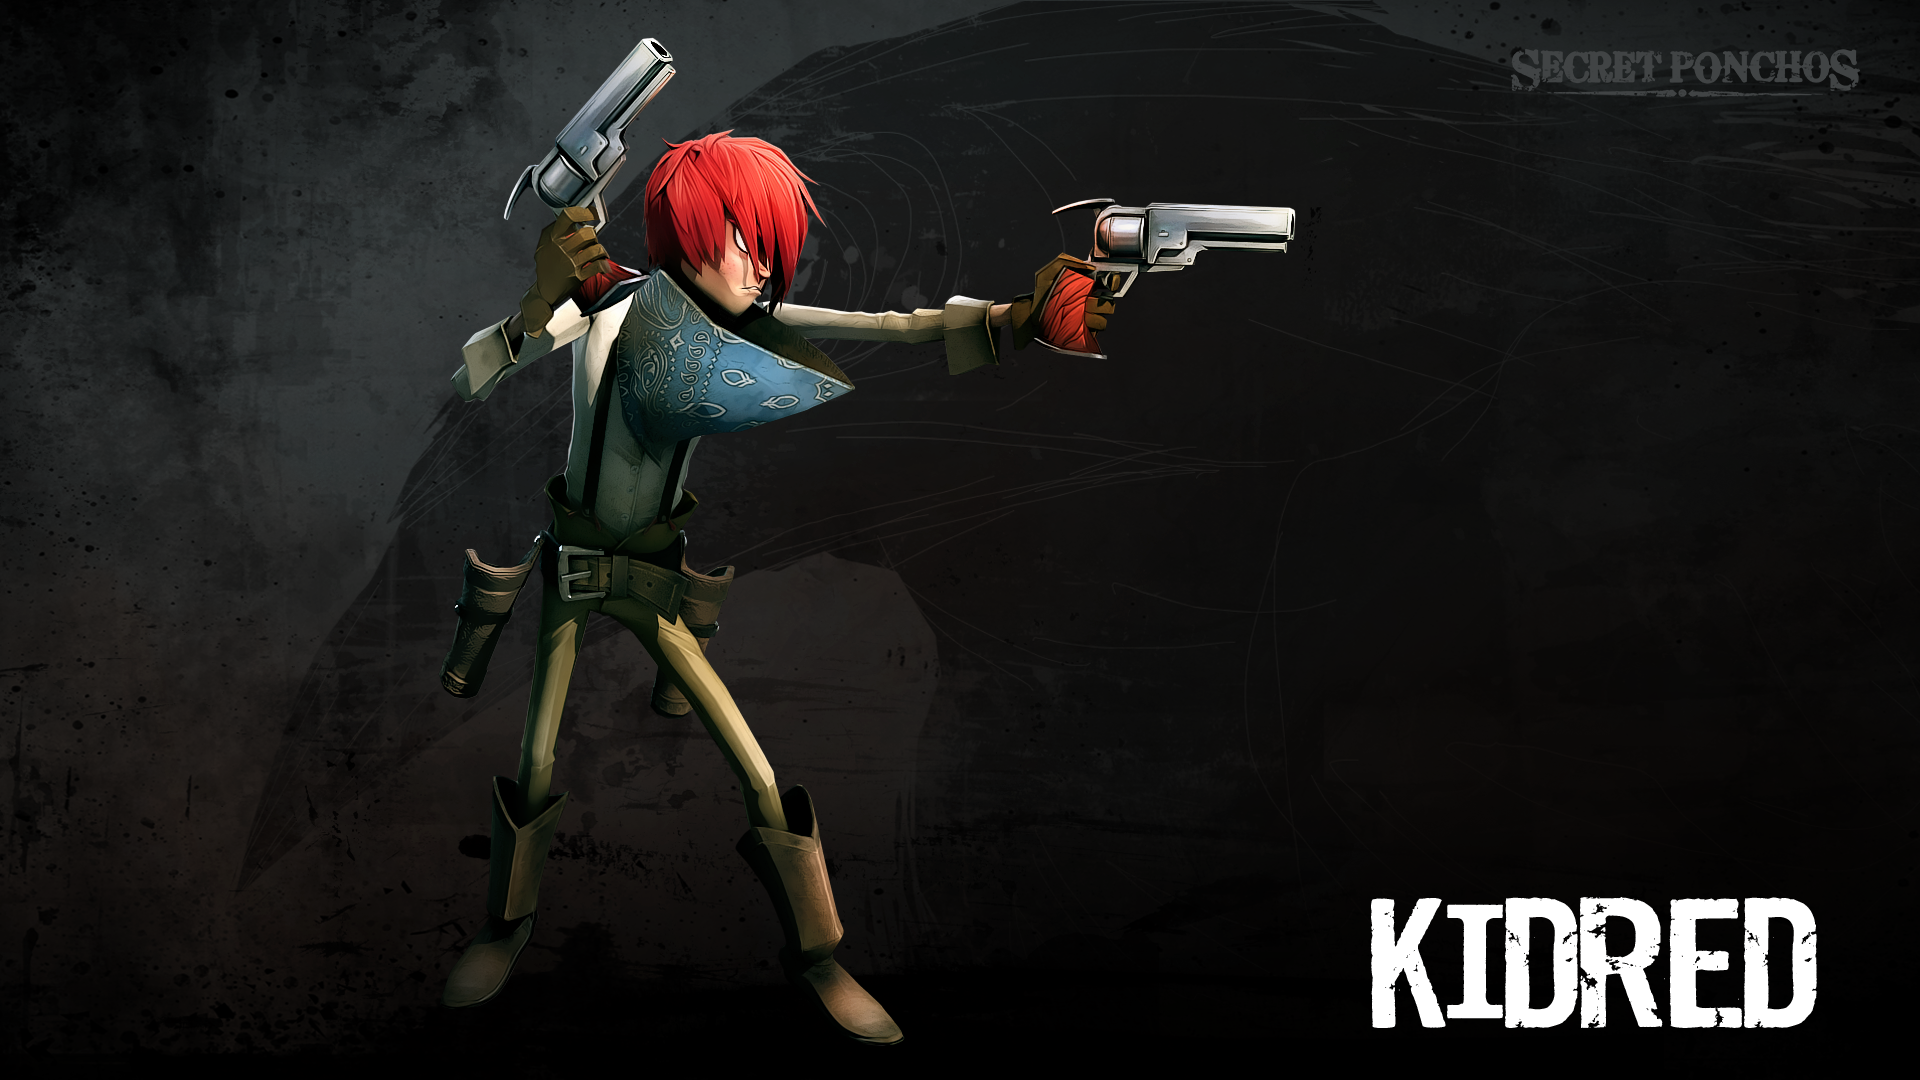 Kid Red